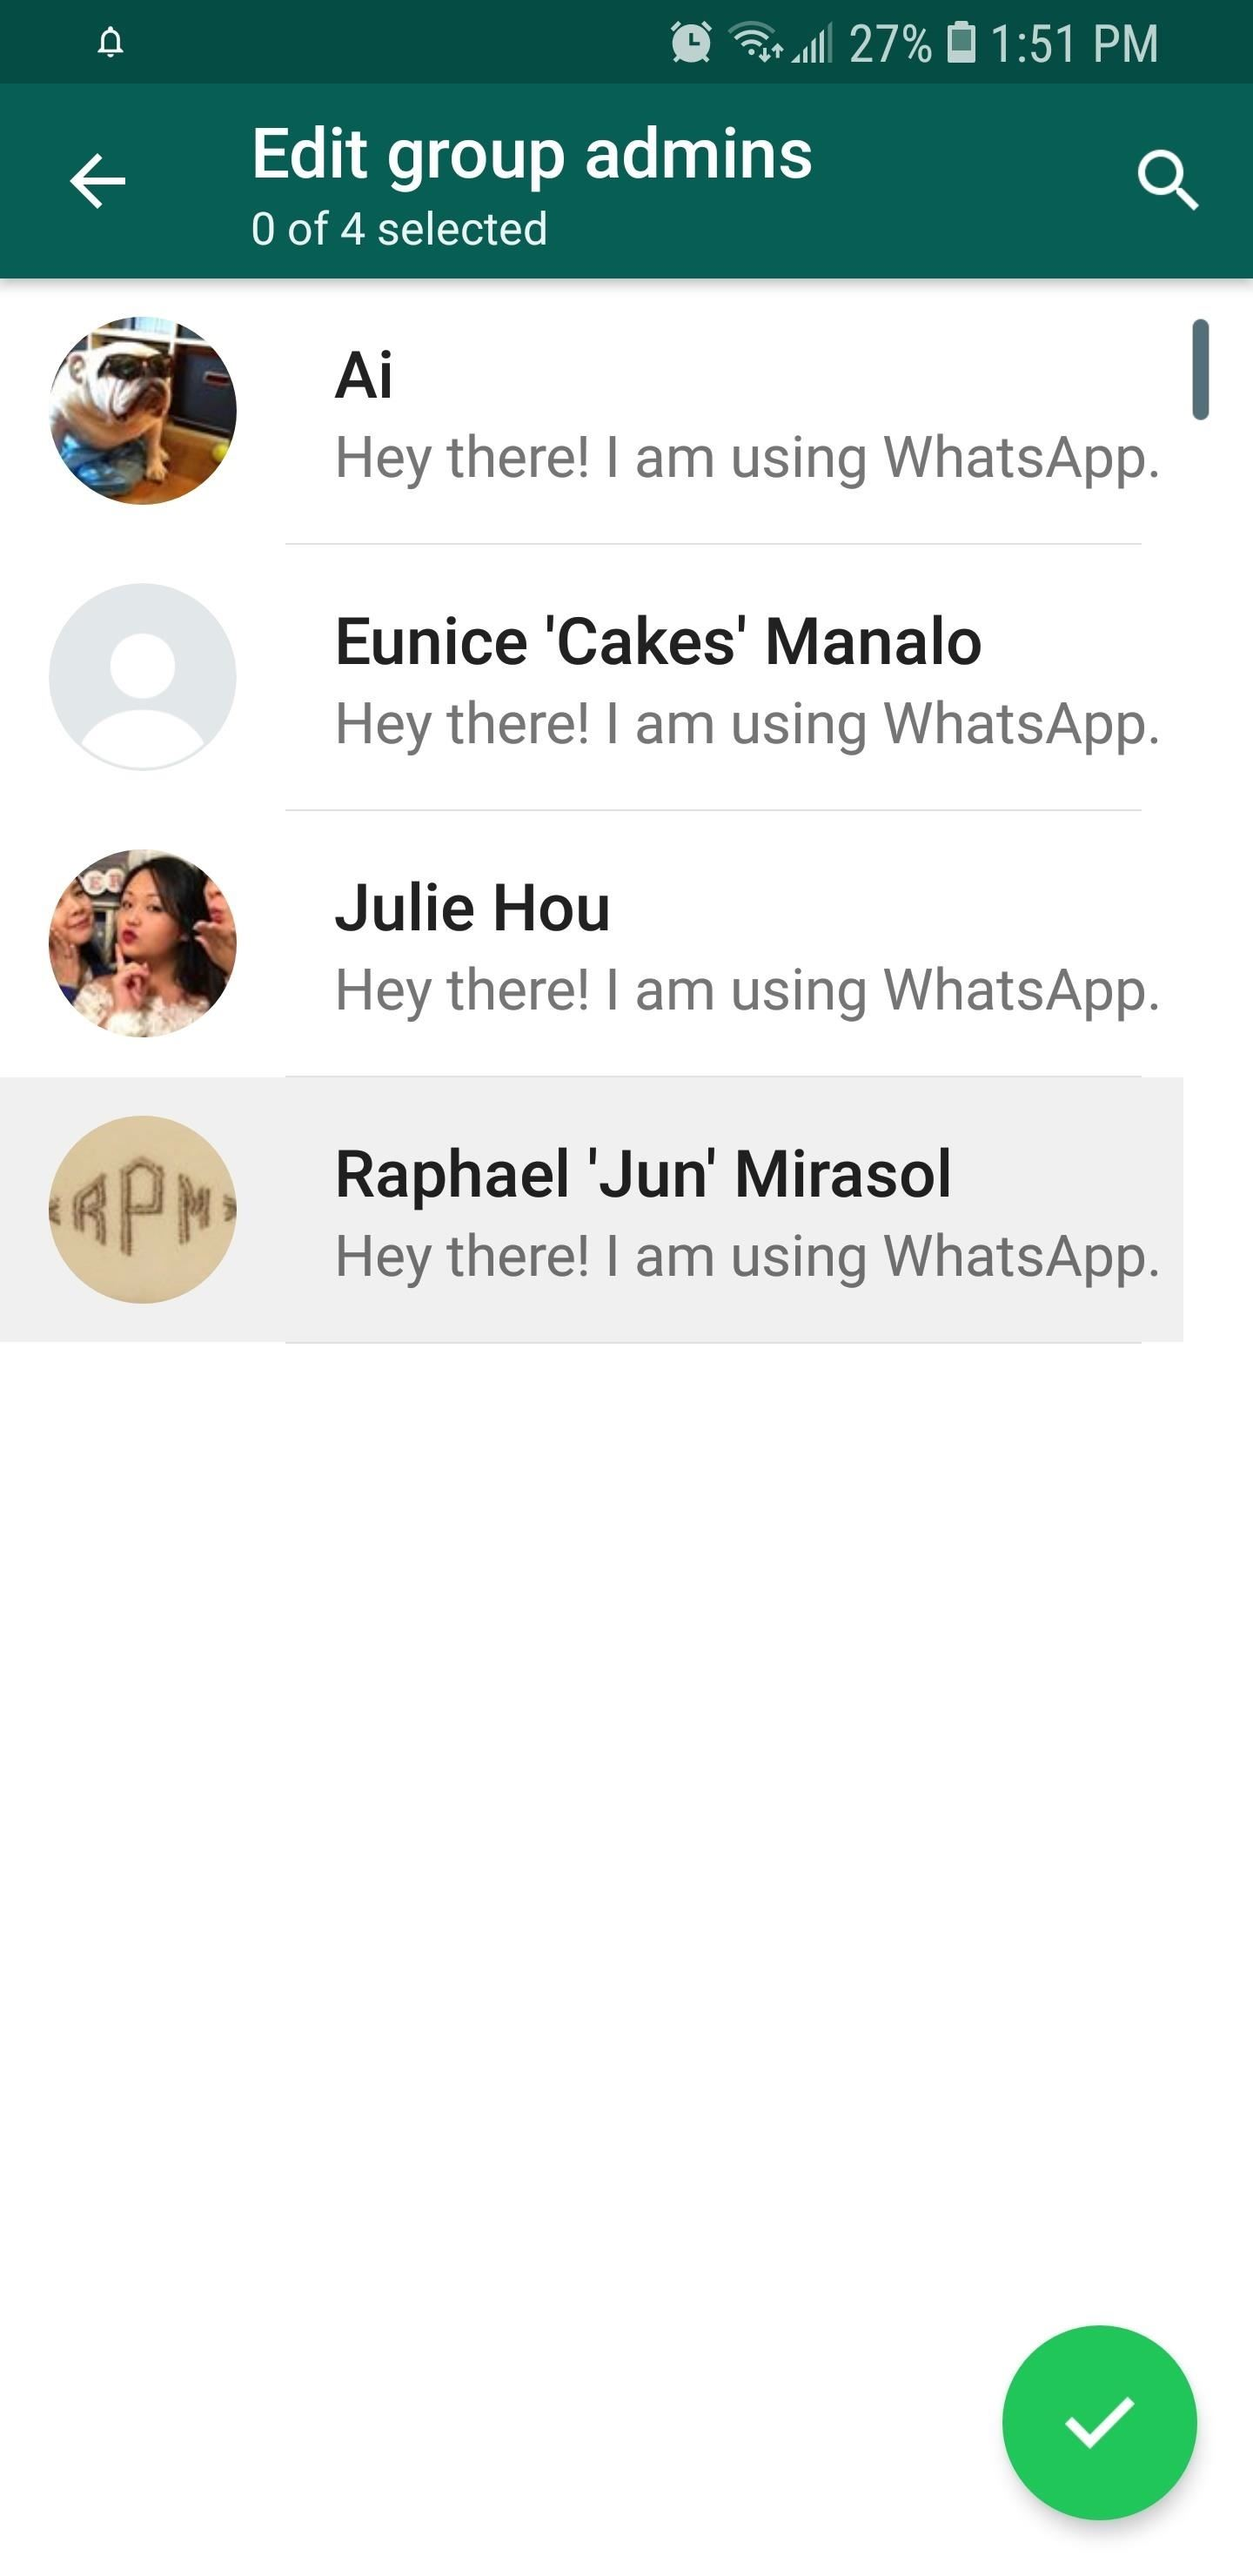 WhatsApp 101: How to Add Descriptions & Grant Admin Privileges to Group Chats